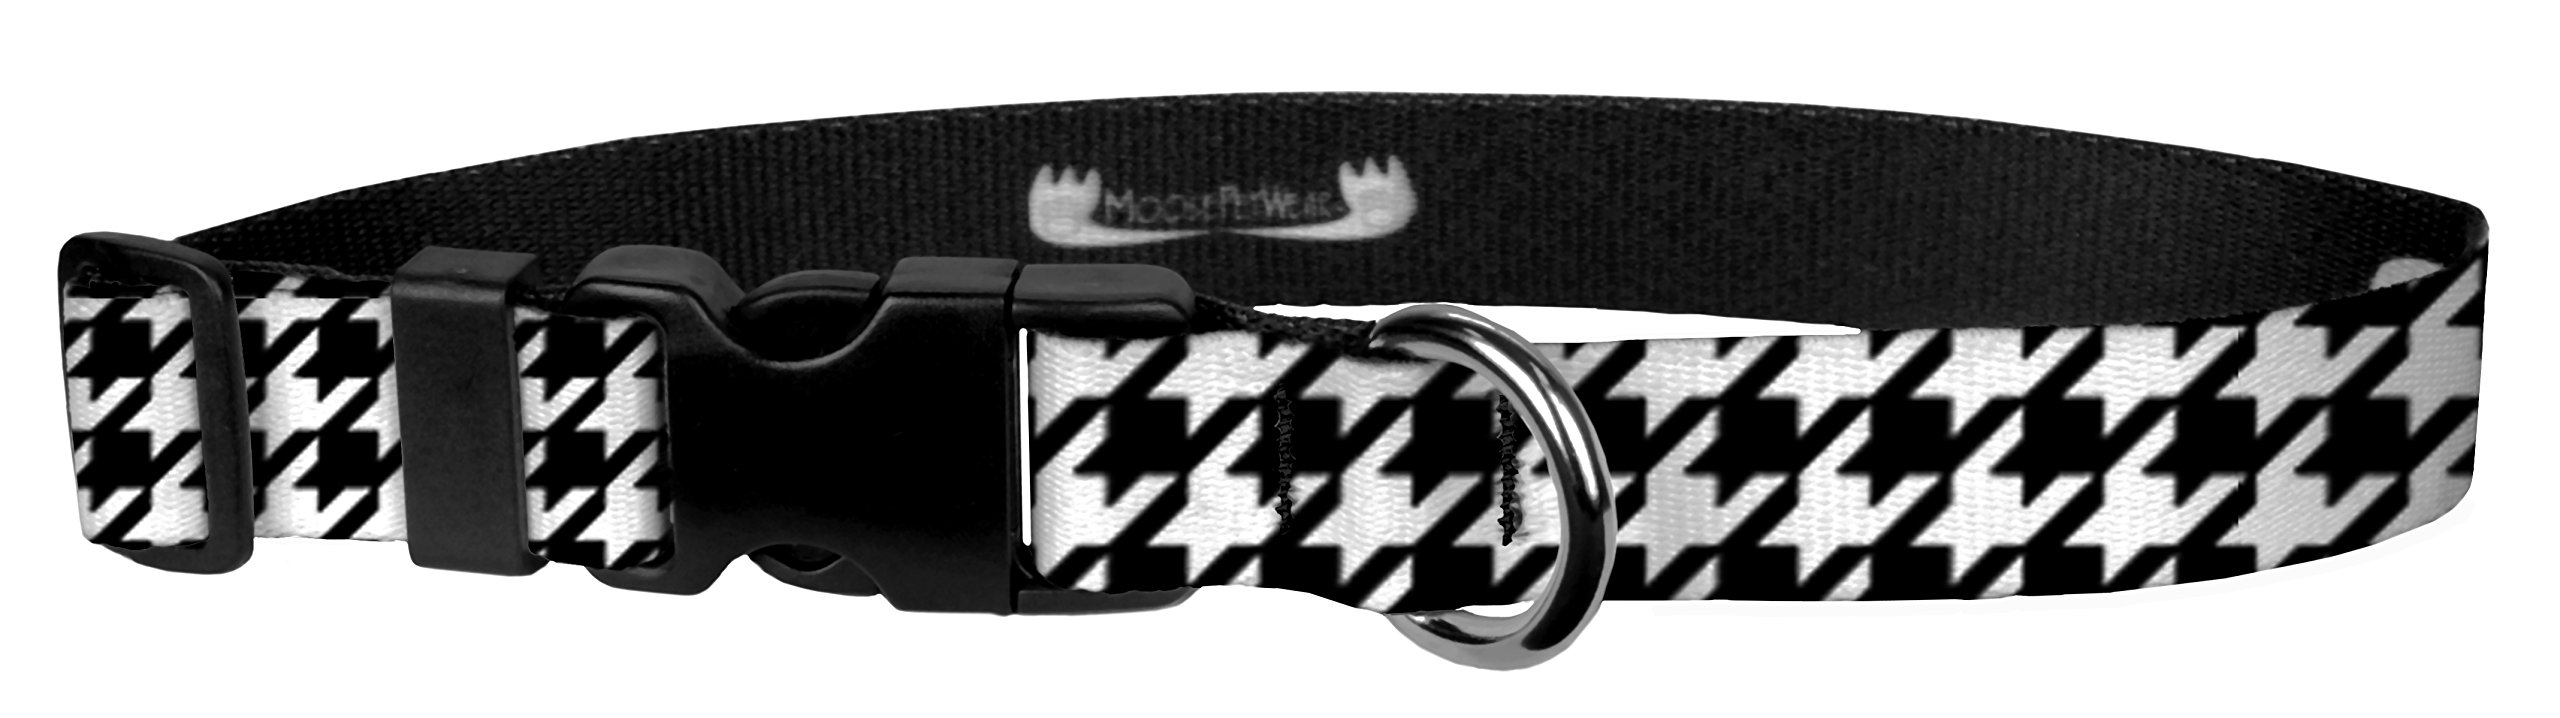 Moose Pet Wear Dog Collar - Patterned Adjustable Pet Collars, Made in the USA - 1 Inch Wide, Extra Large, Houndstooth Black/White